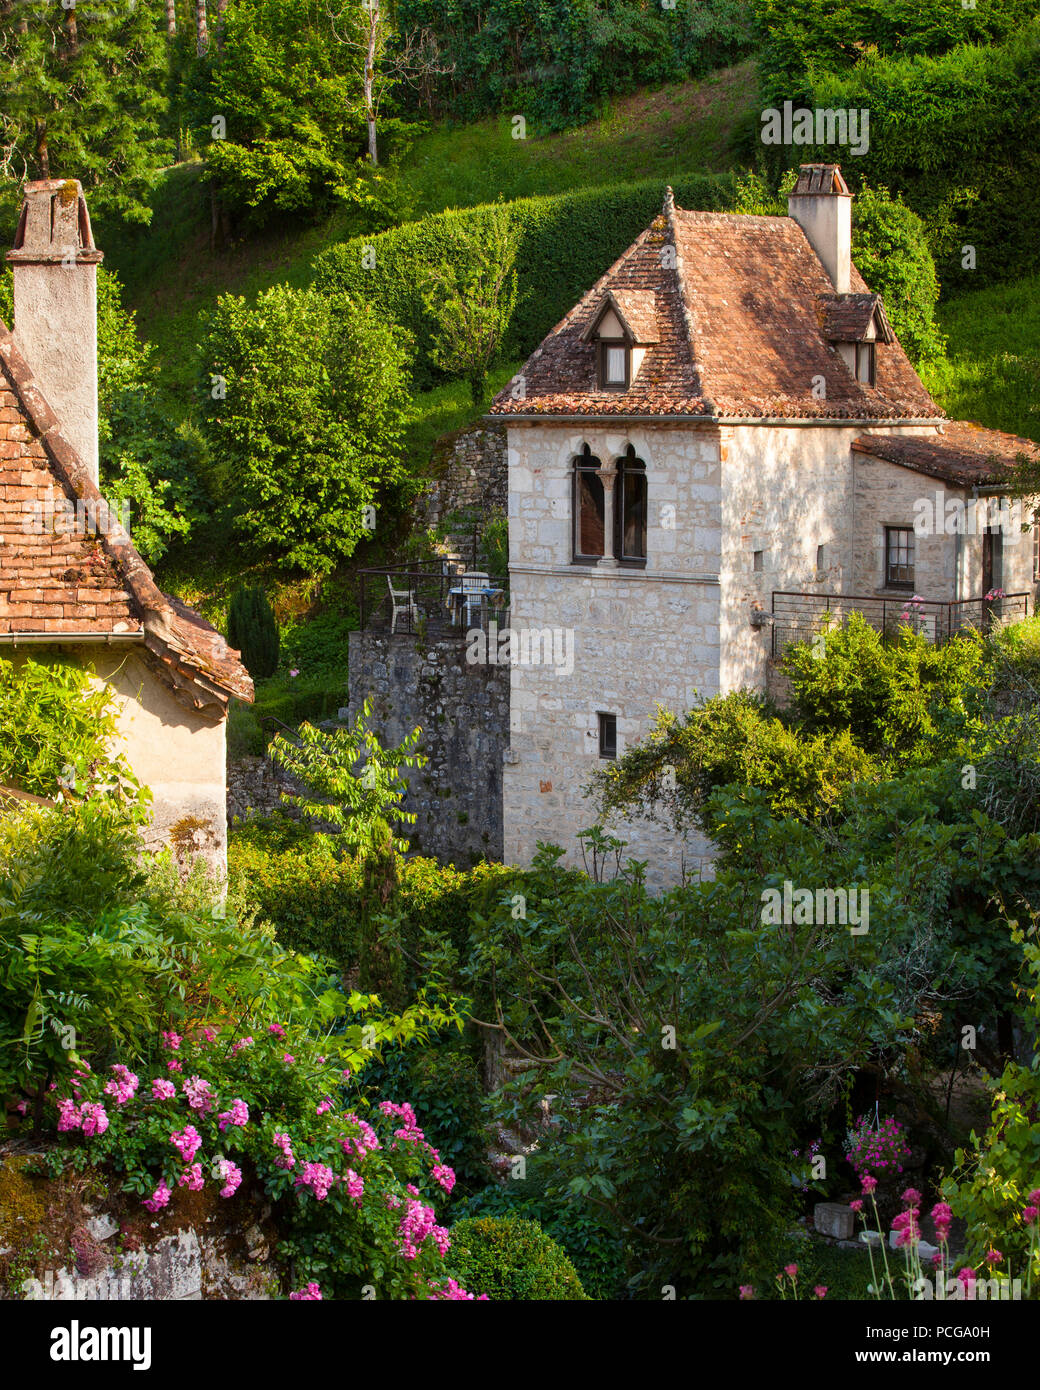 Homes and flower gardens in Saint-Cirq-Lapopie, Lot Valley, Midi-Pyreness France - Stock Image